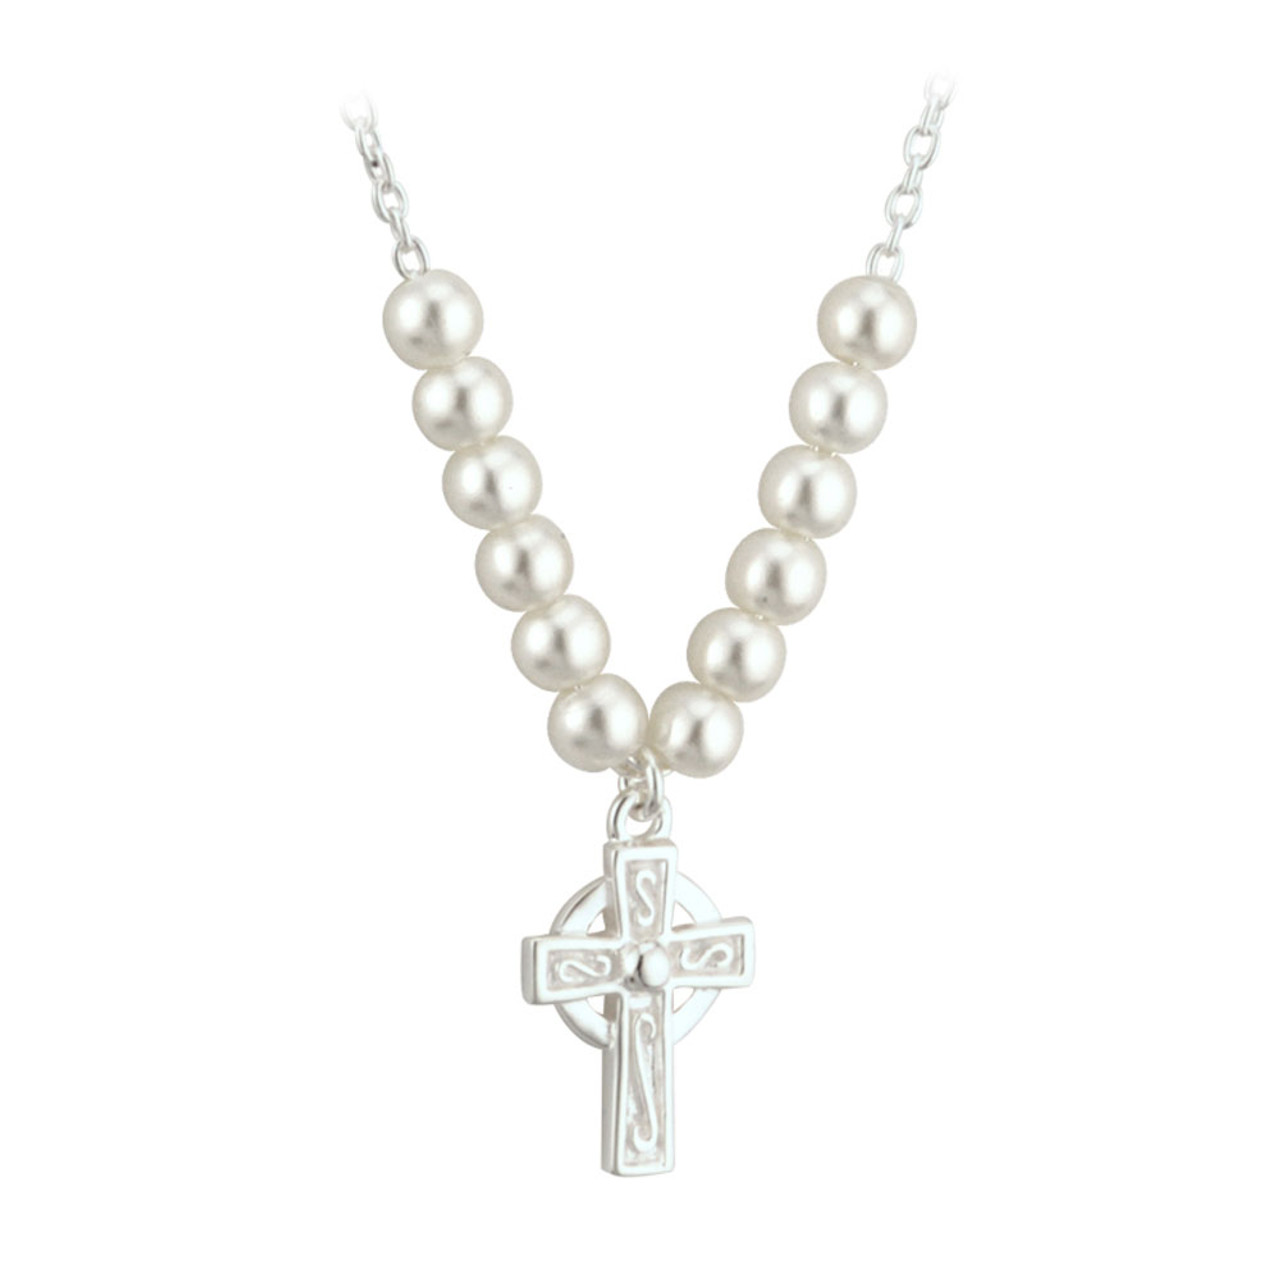 Pearl Celtic Cross Necklace, 15 Inch